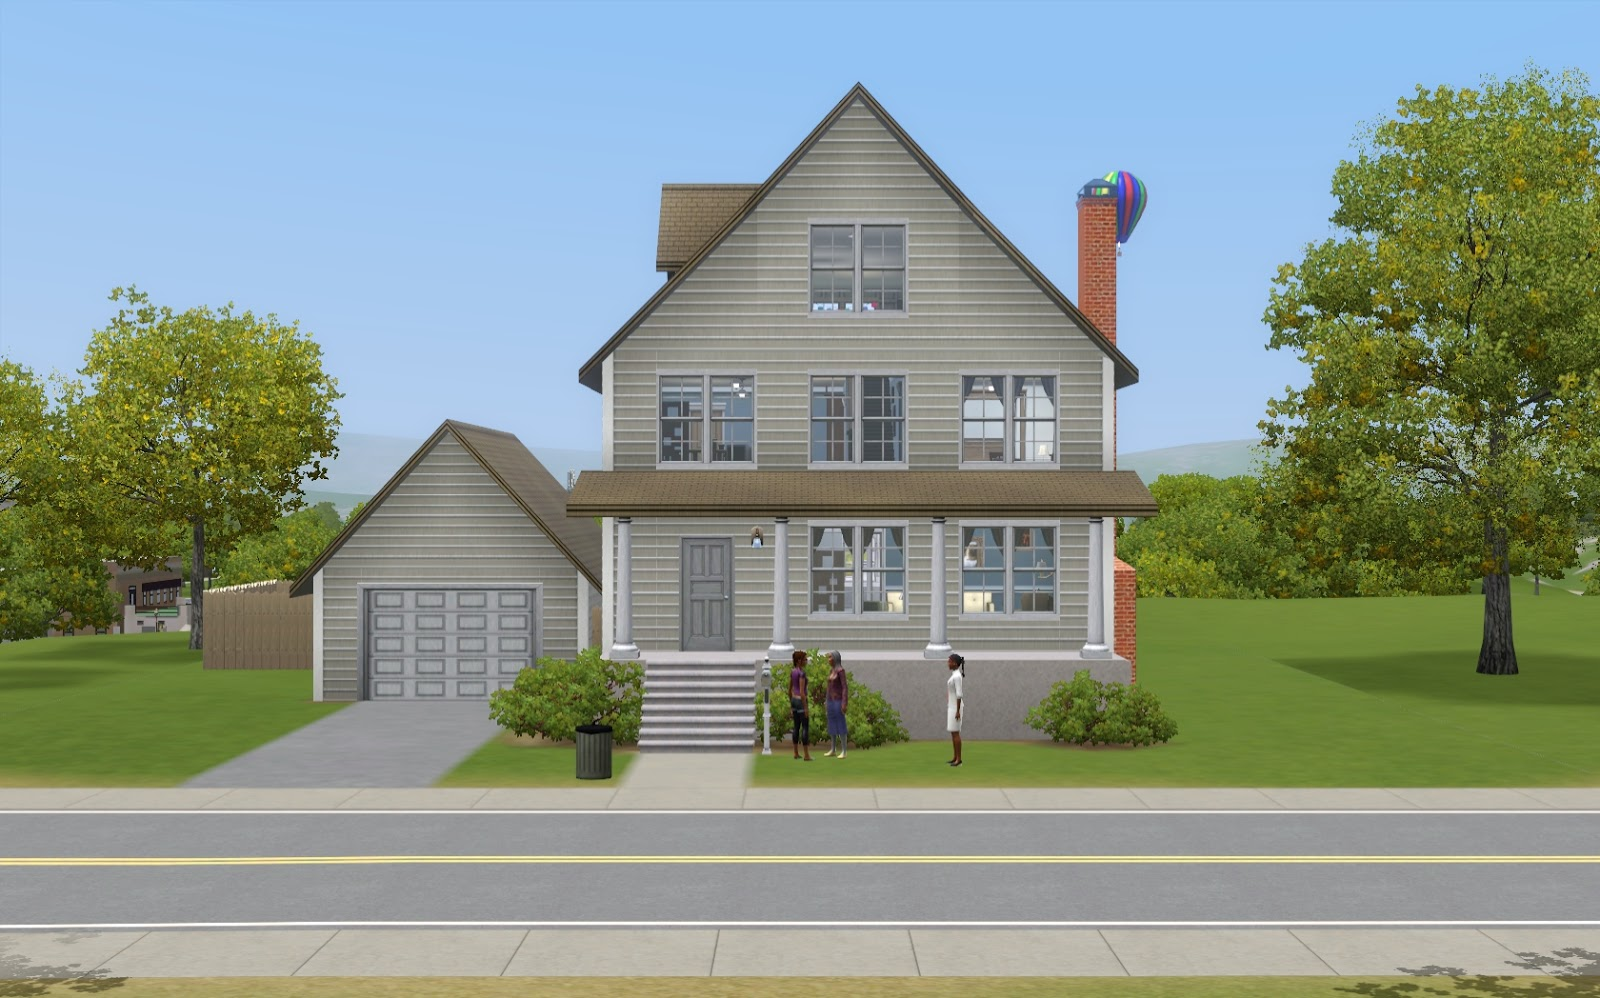 seattle houses, work houses, food houses, sims 3 houses, family houses, fashion houses, fun houses, on 3 famliy house design